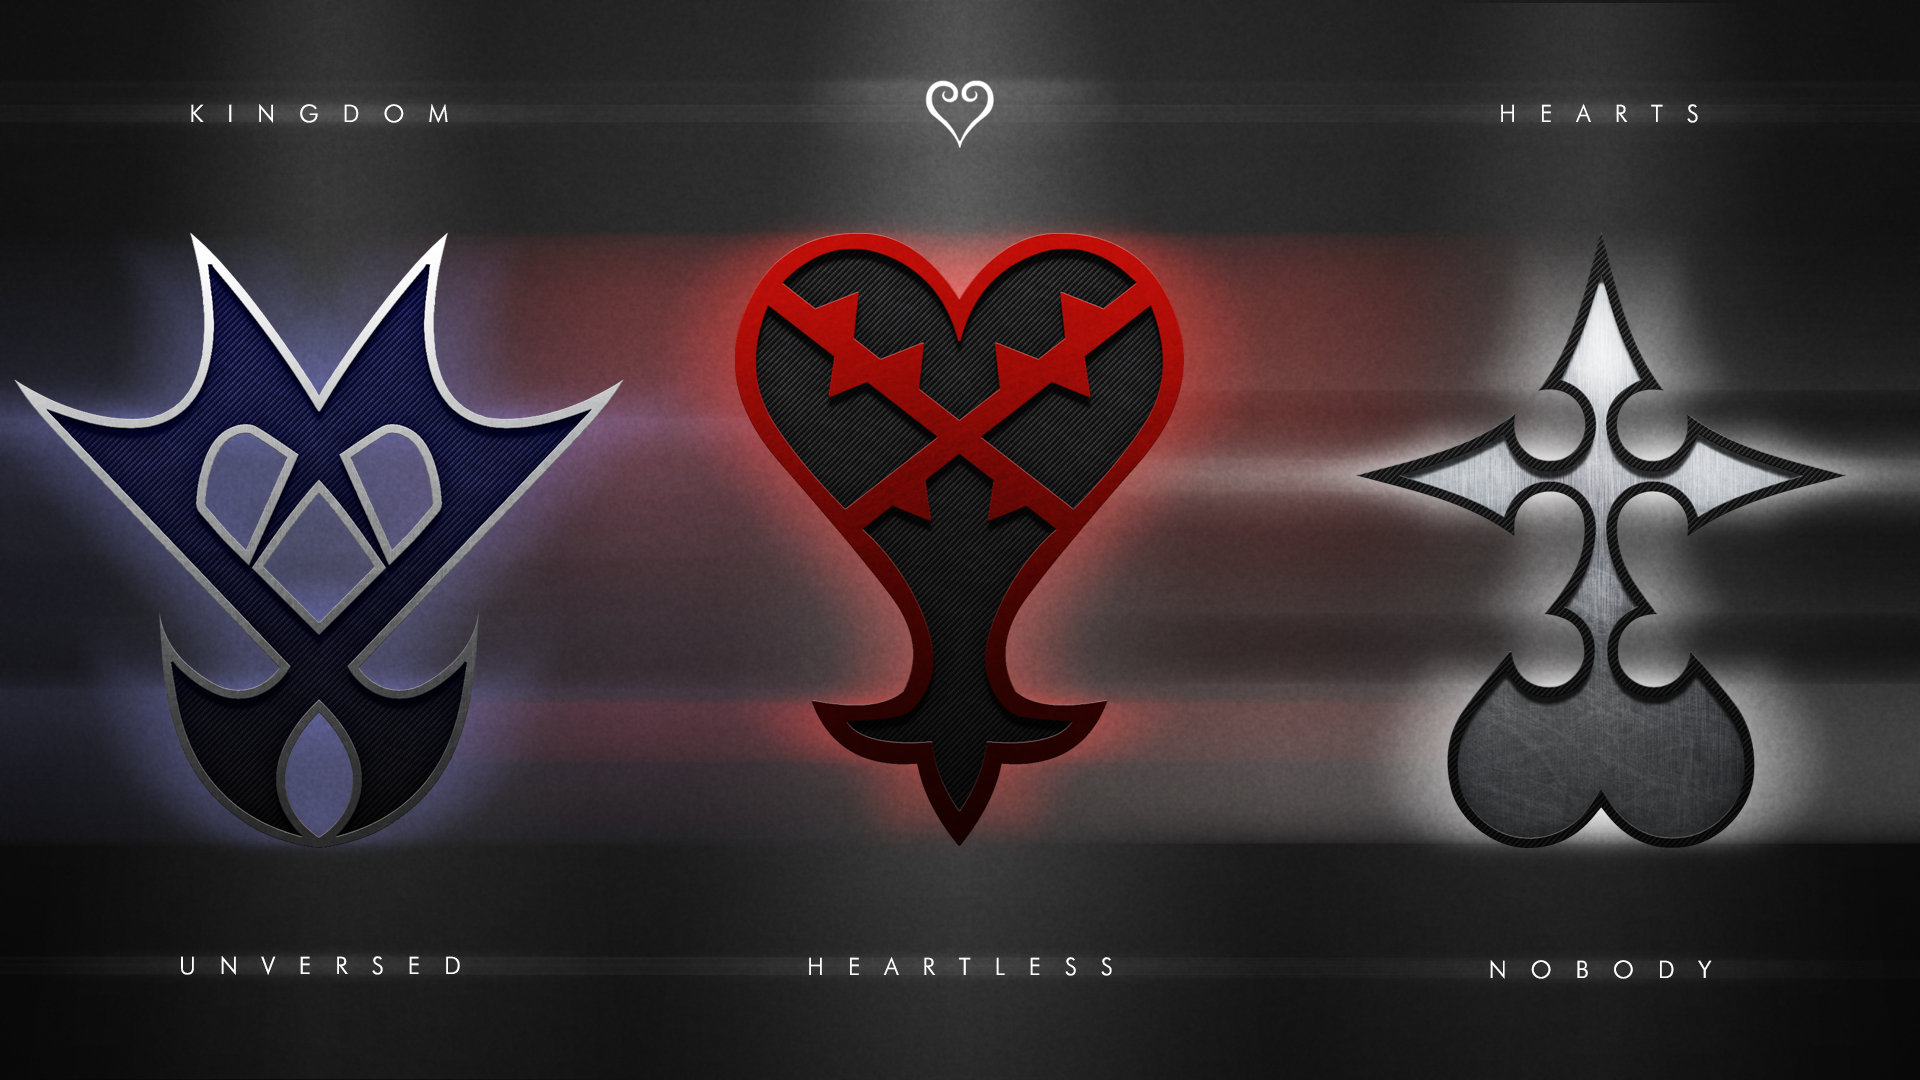 Kingdom Hearts Heartless wallpaper   1144002 1920x1080